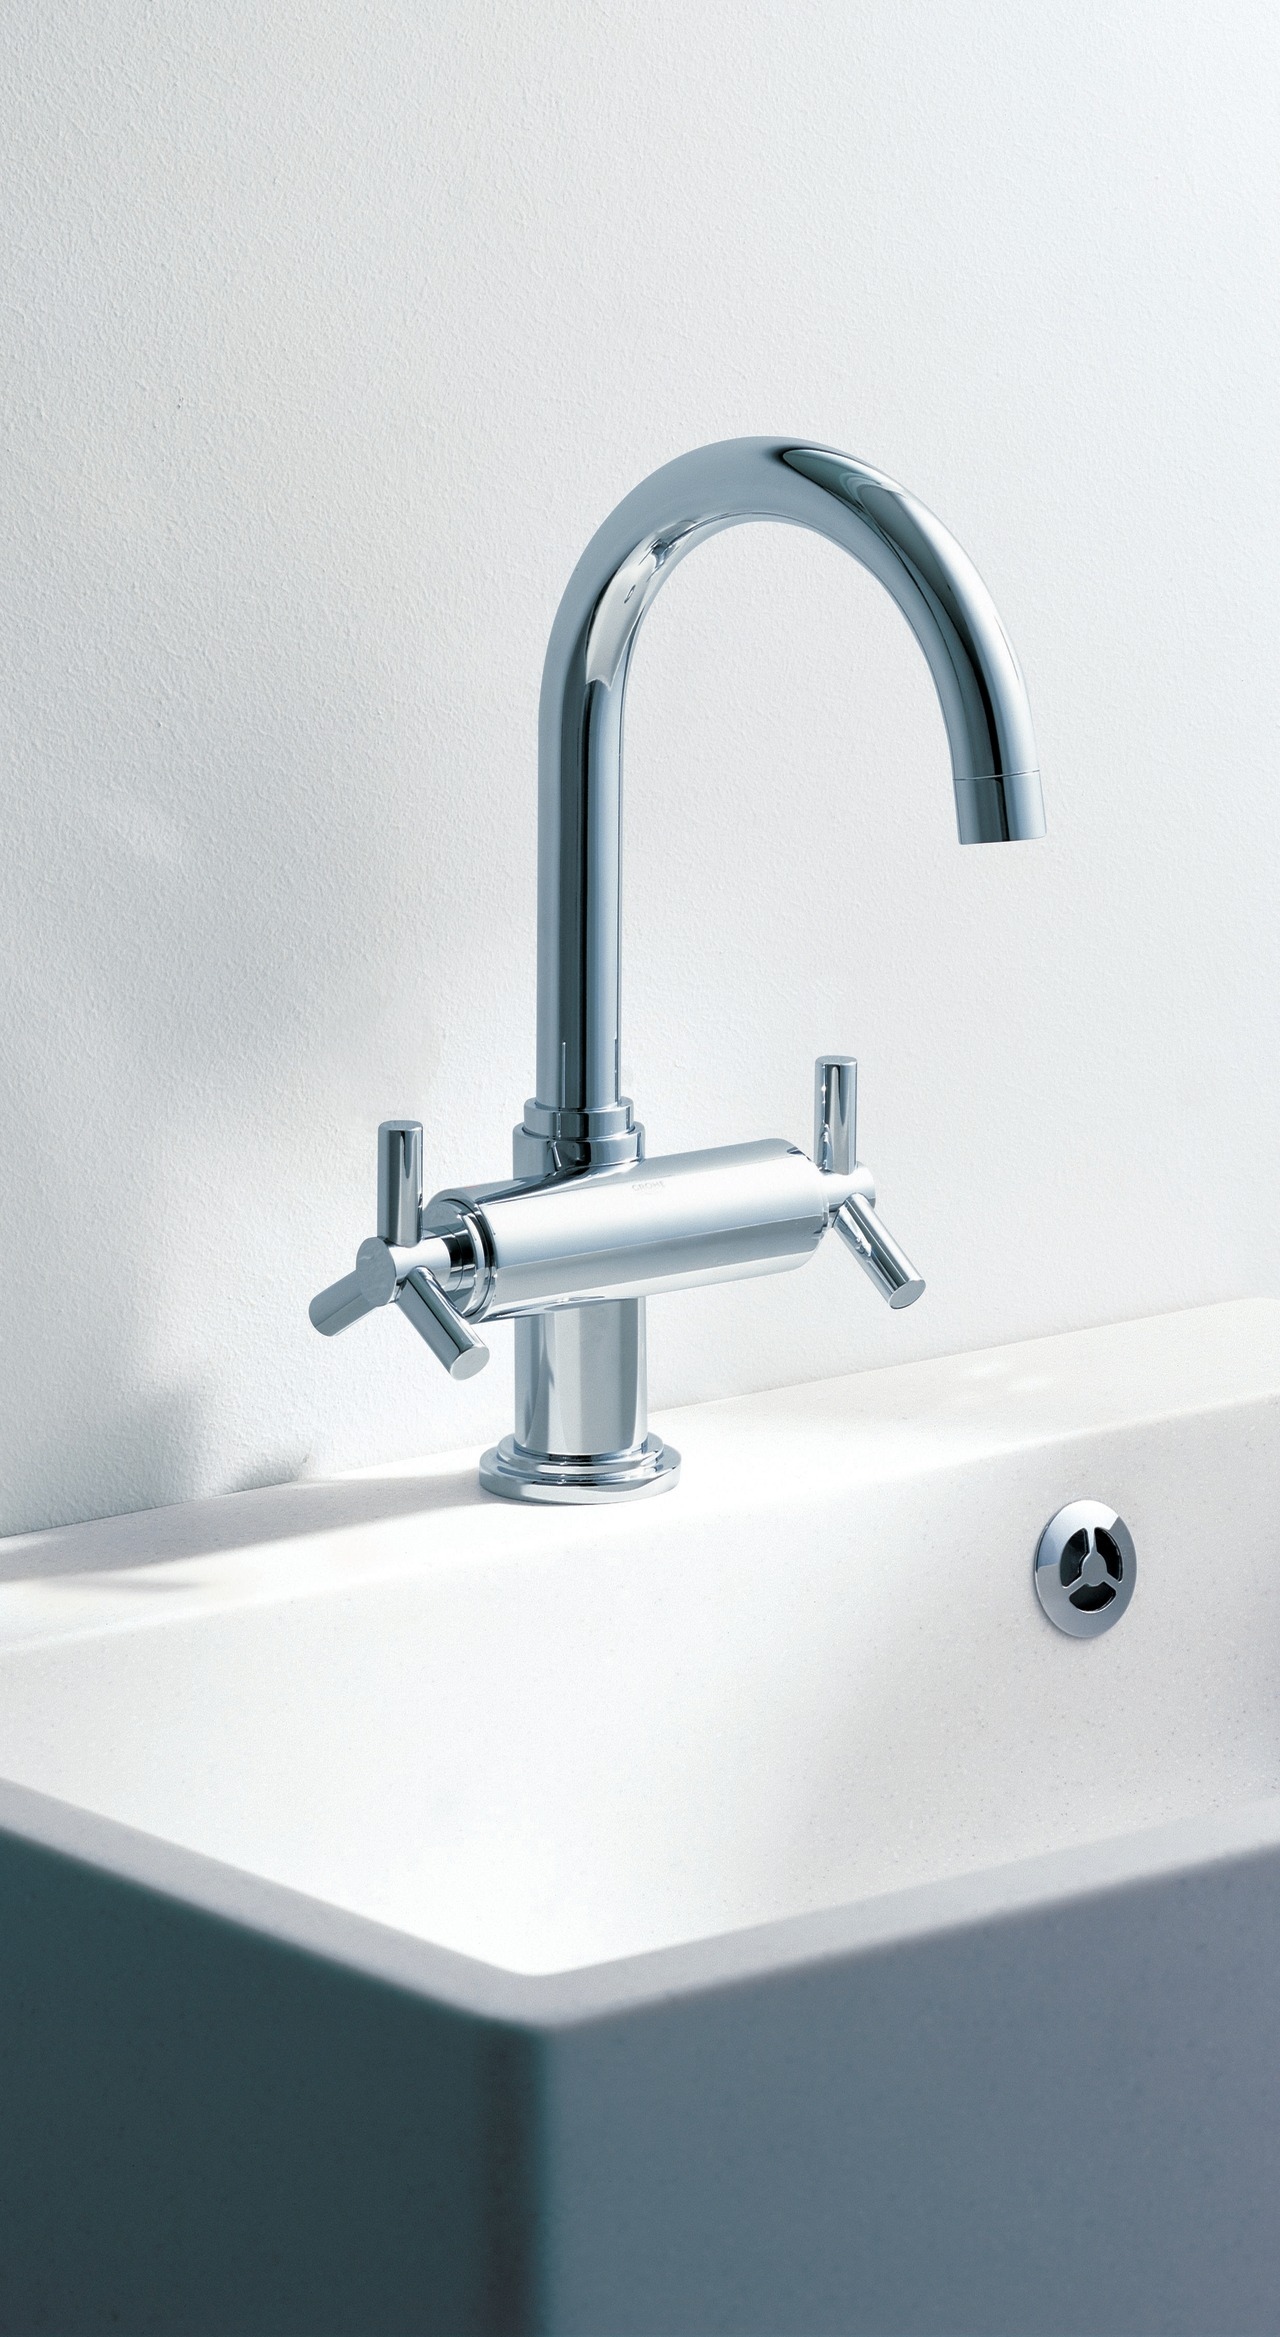 Accessory for the bathroom bathroom sink, plumbing fixture, product, product design, sink, tap, white